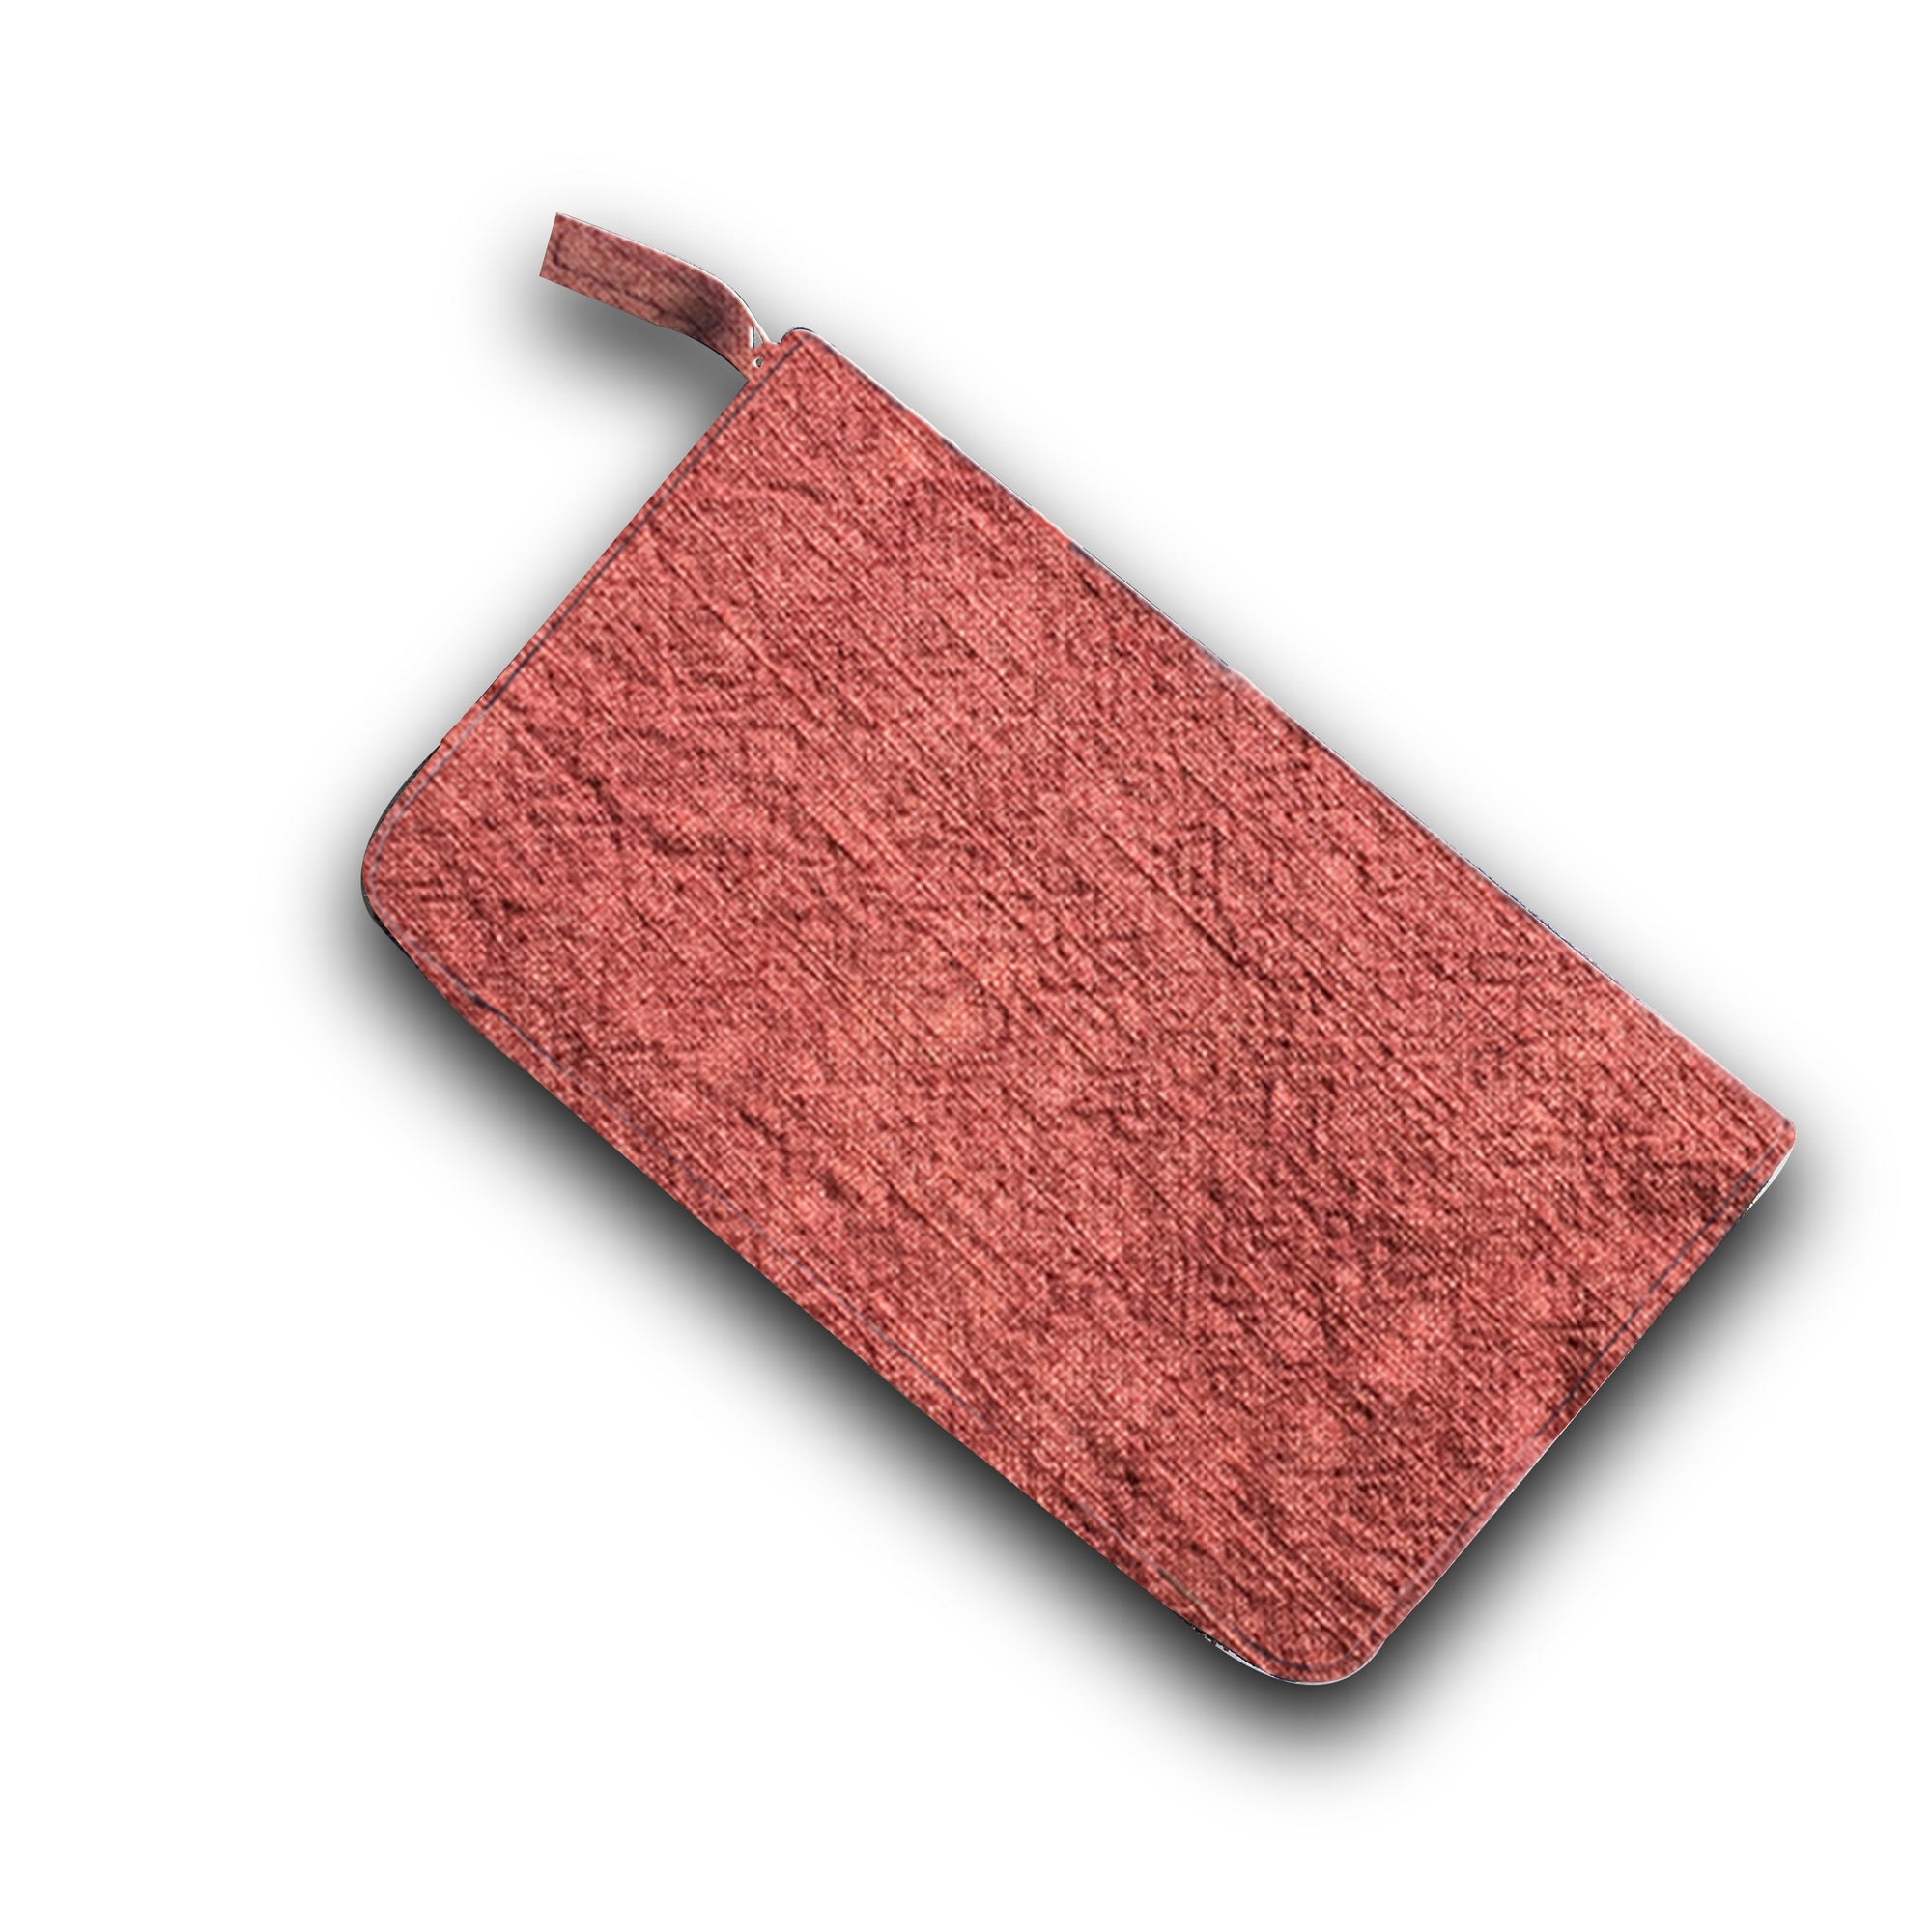 TRAVELLING TREV CLUTCH - DEEP BEET